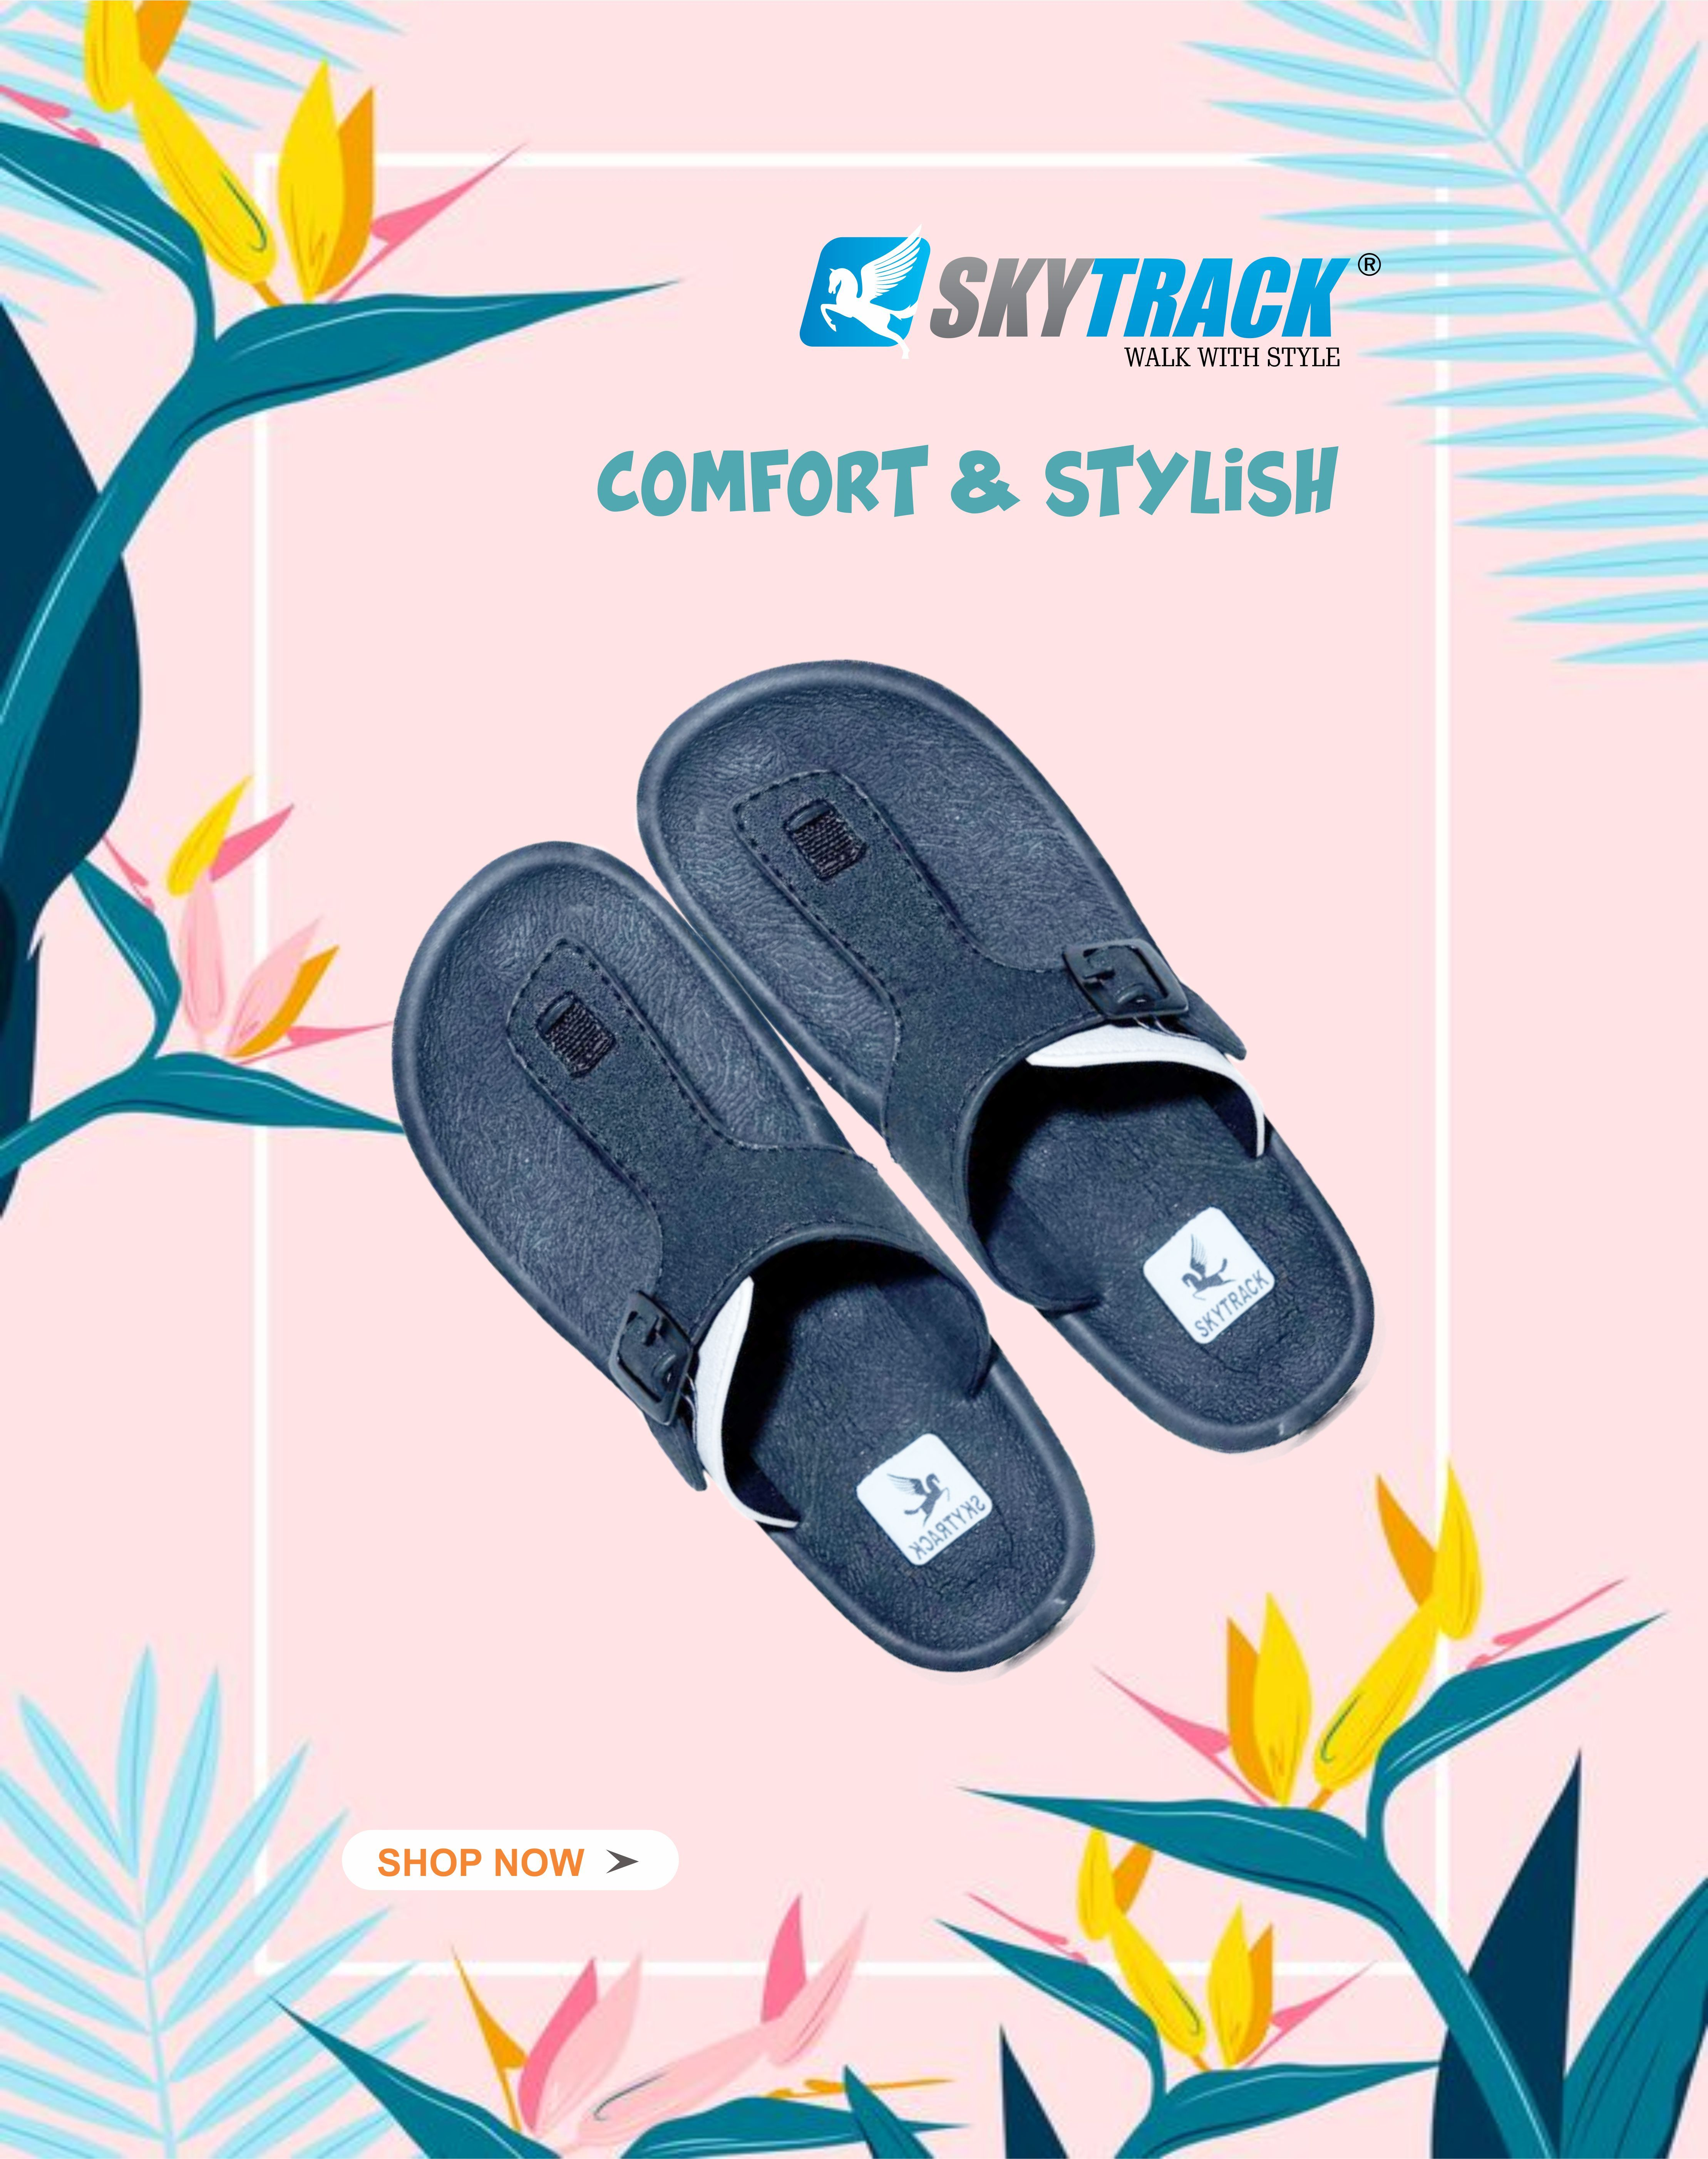 Stride In Comfort All Day And Night In Our Skytrack Flip